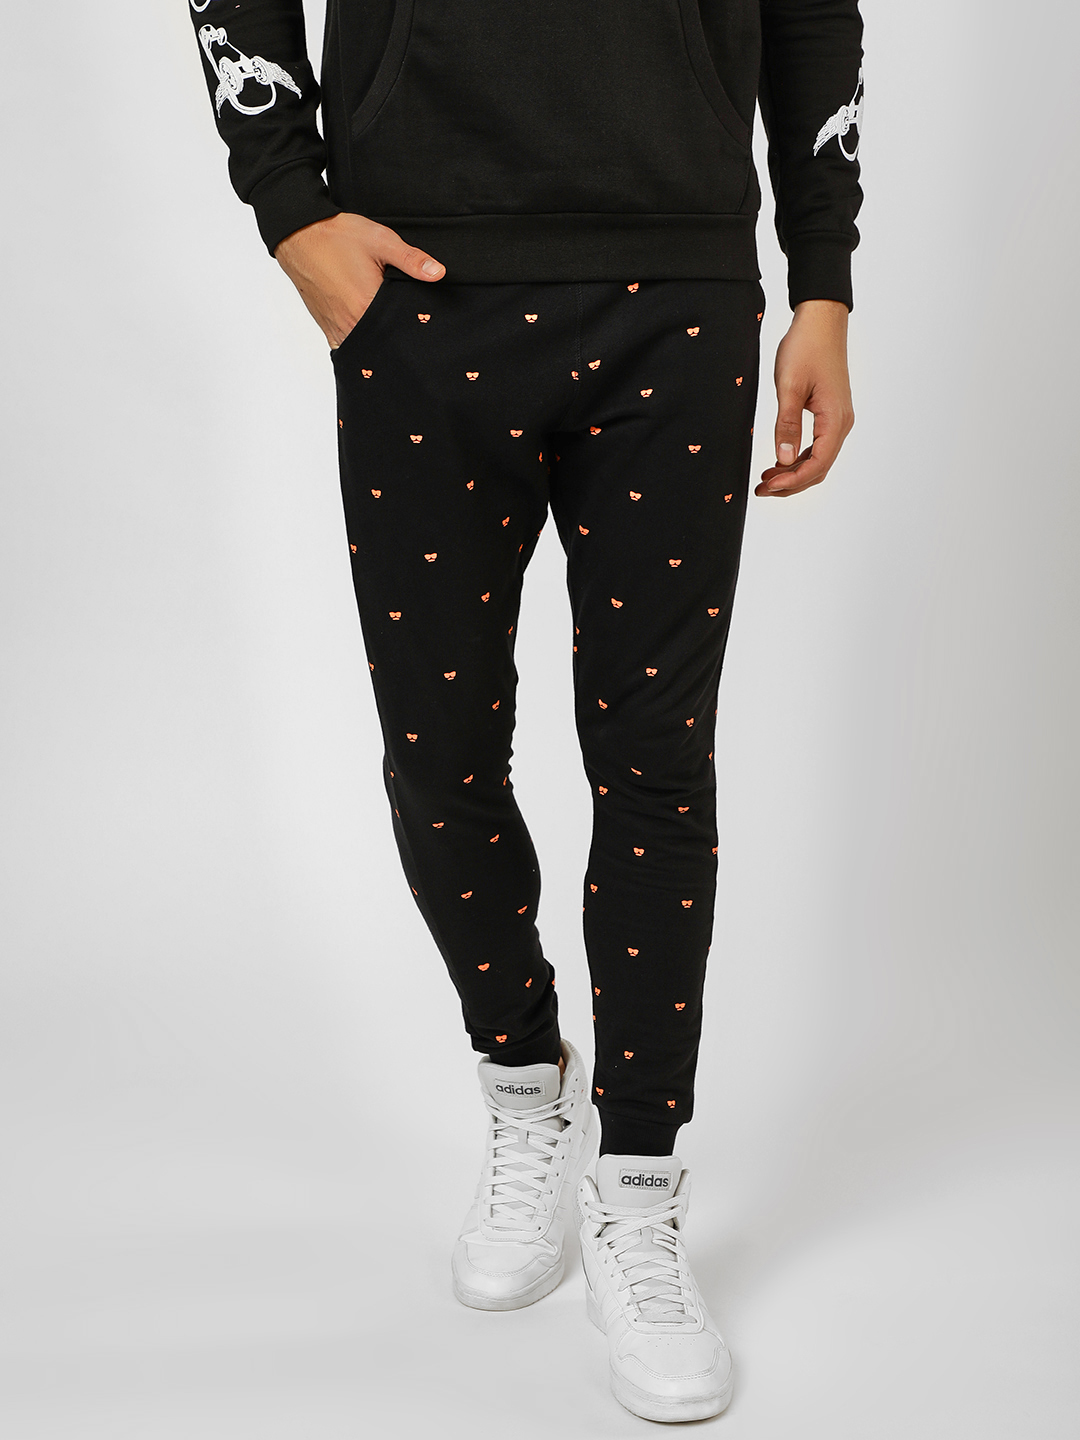 Garcon Black All Over Printed Joggers 1